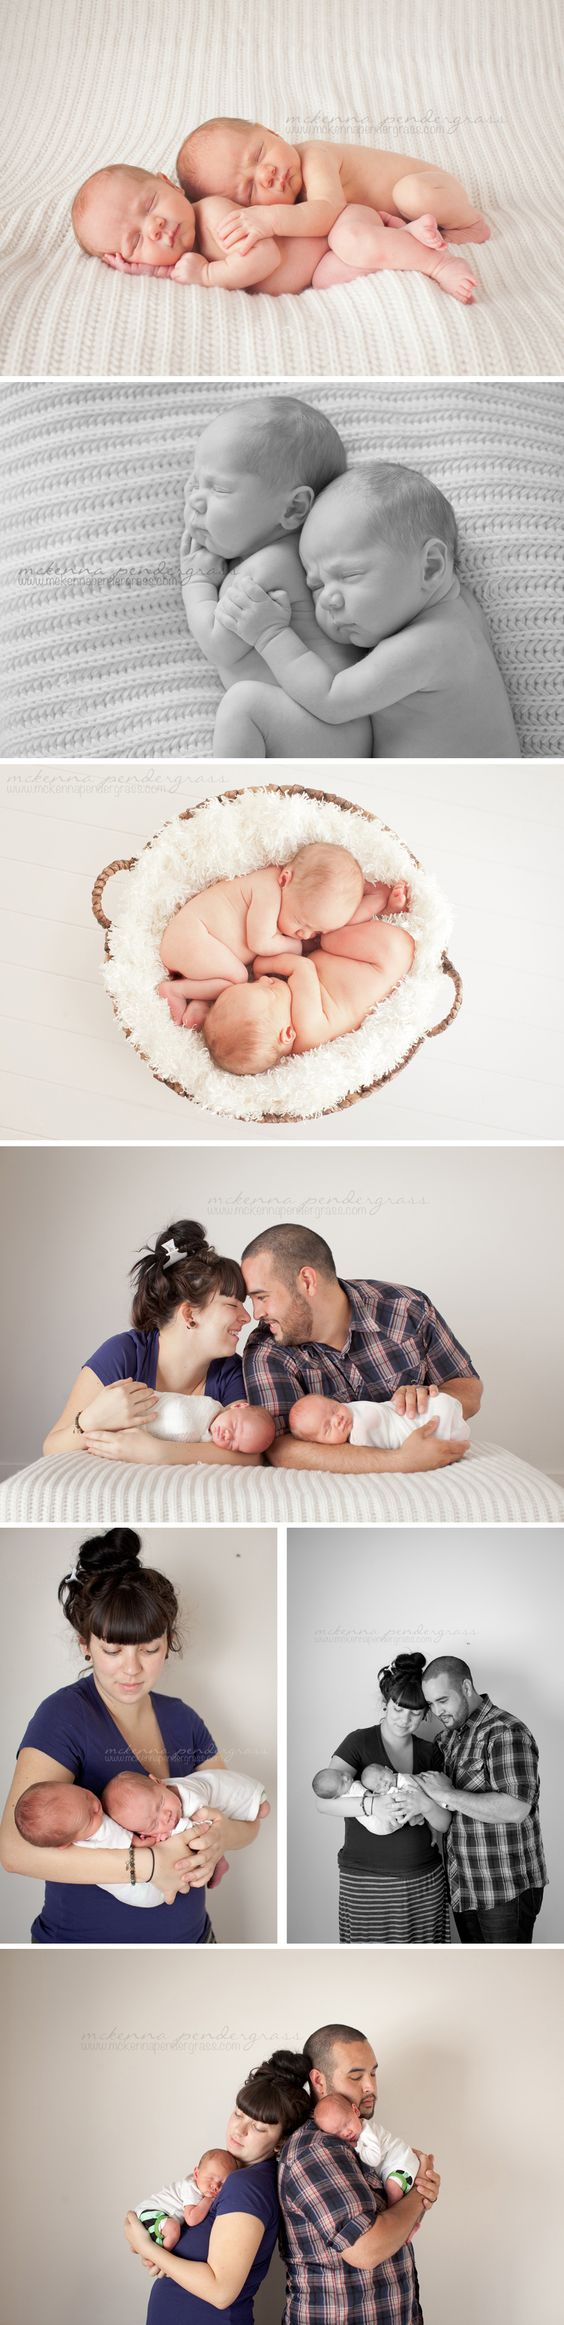 Newborn Twins. Posing for newborn twins together and with parents.